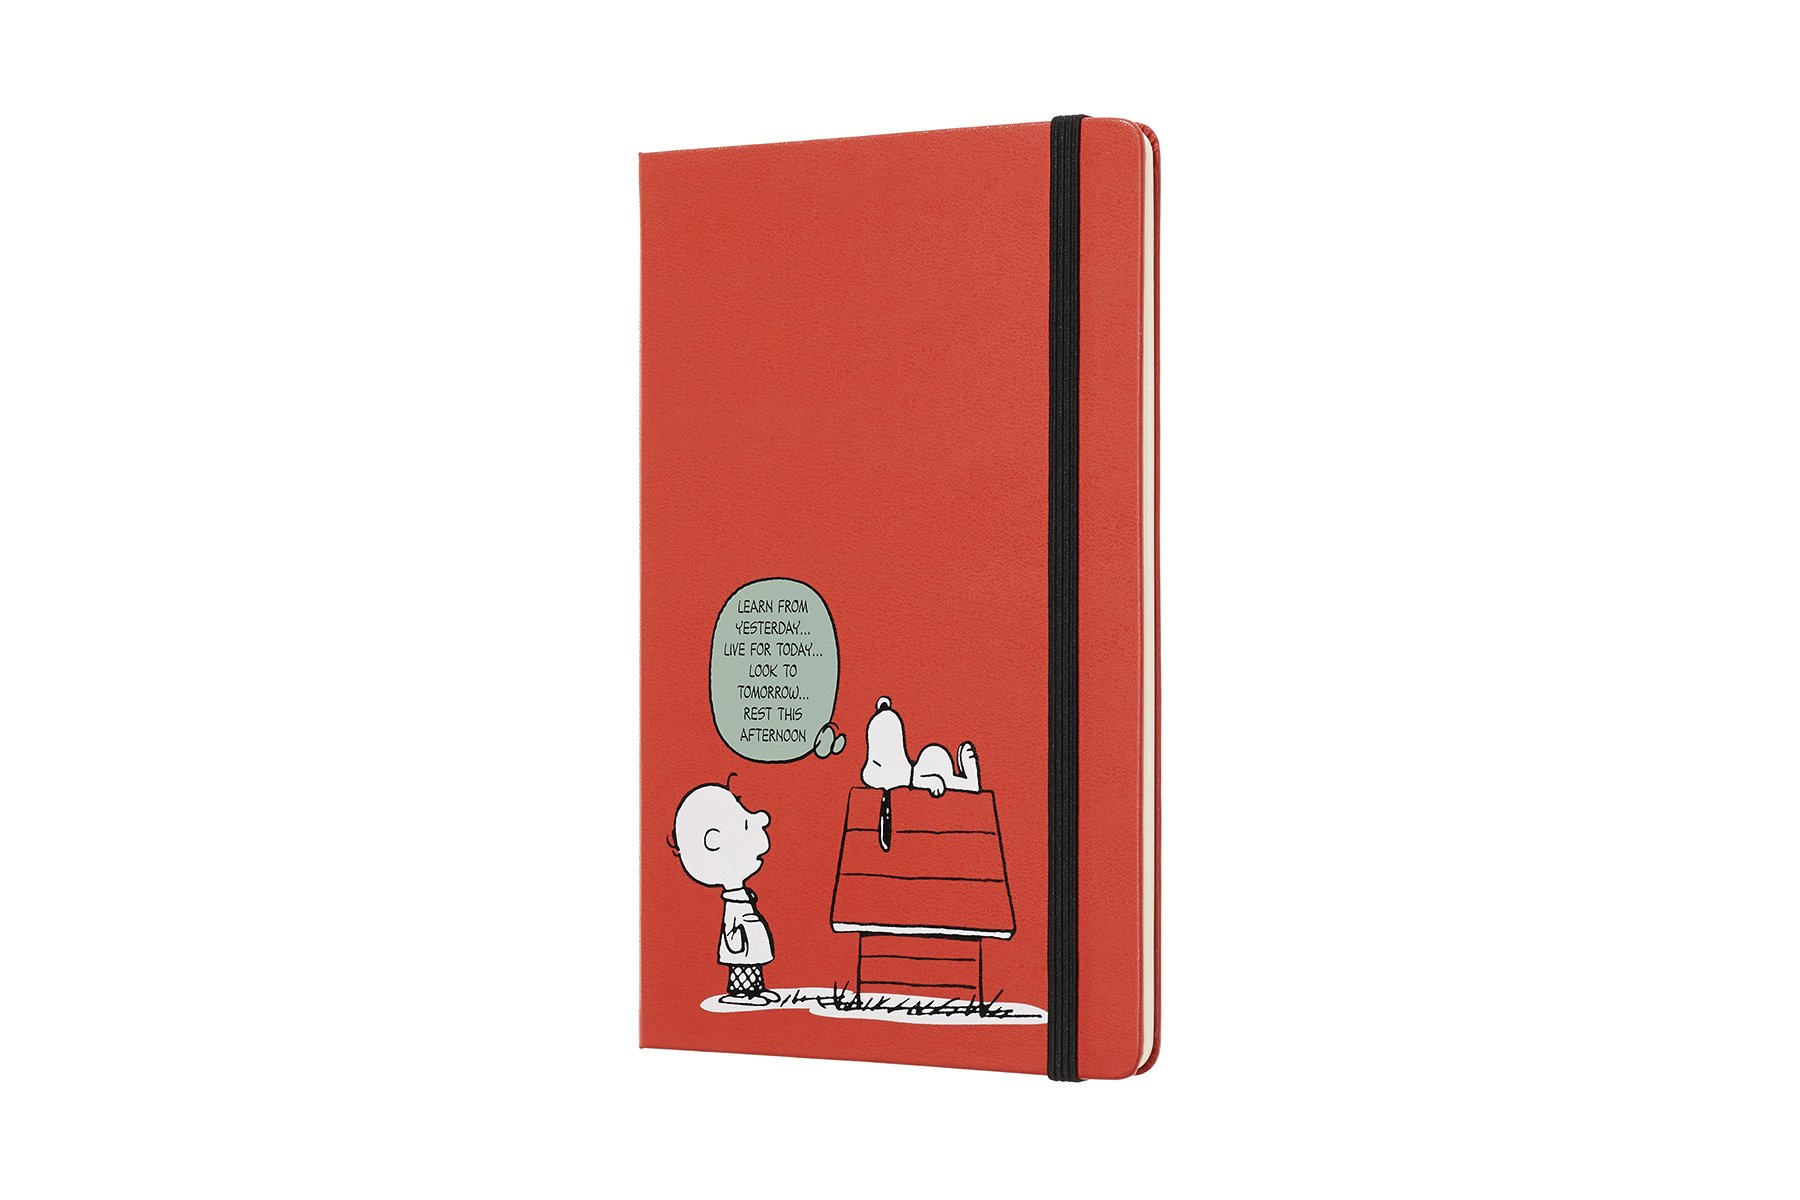 Moleskine Planner Diary 2019 12M Limited Edition Peanuts Daily Large Red  Office Product – Engagement Calendar 801169246